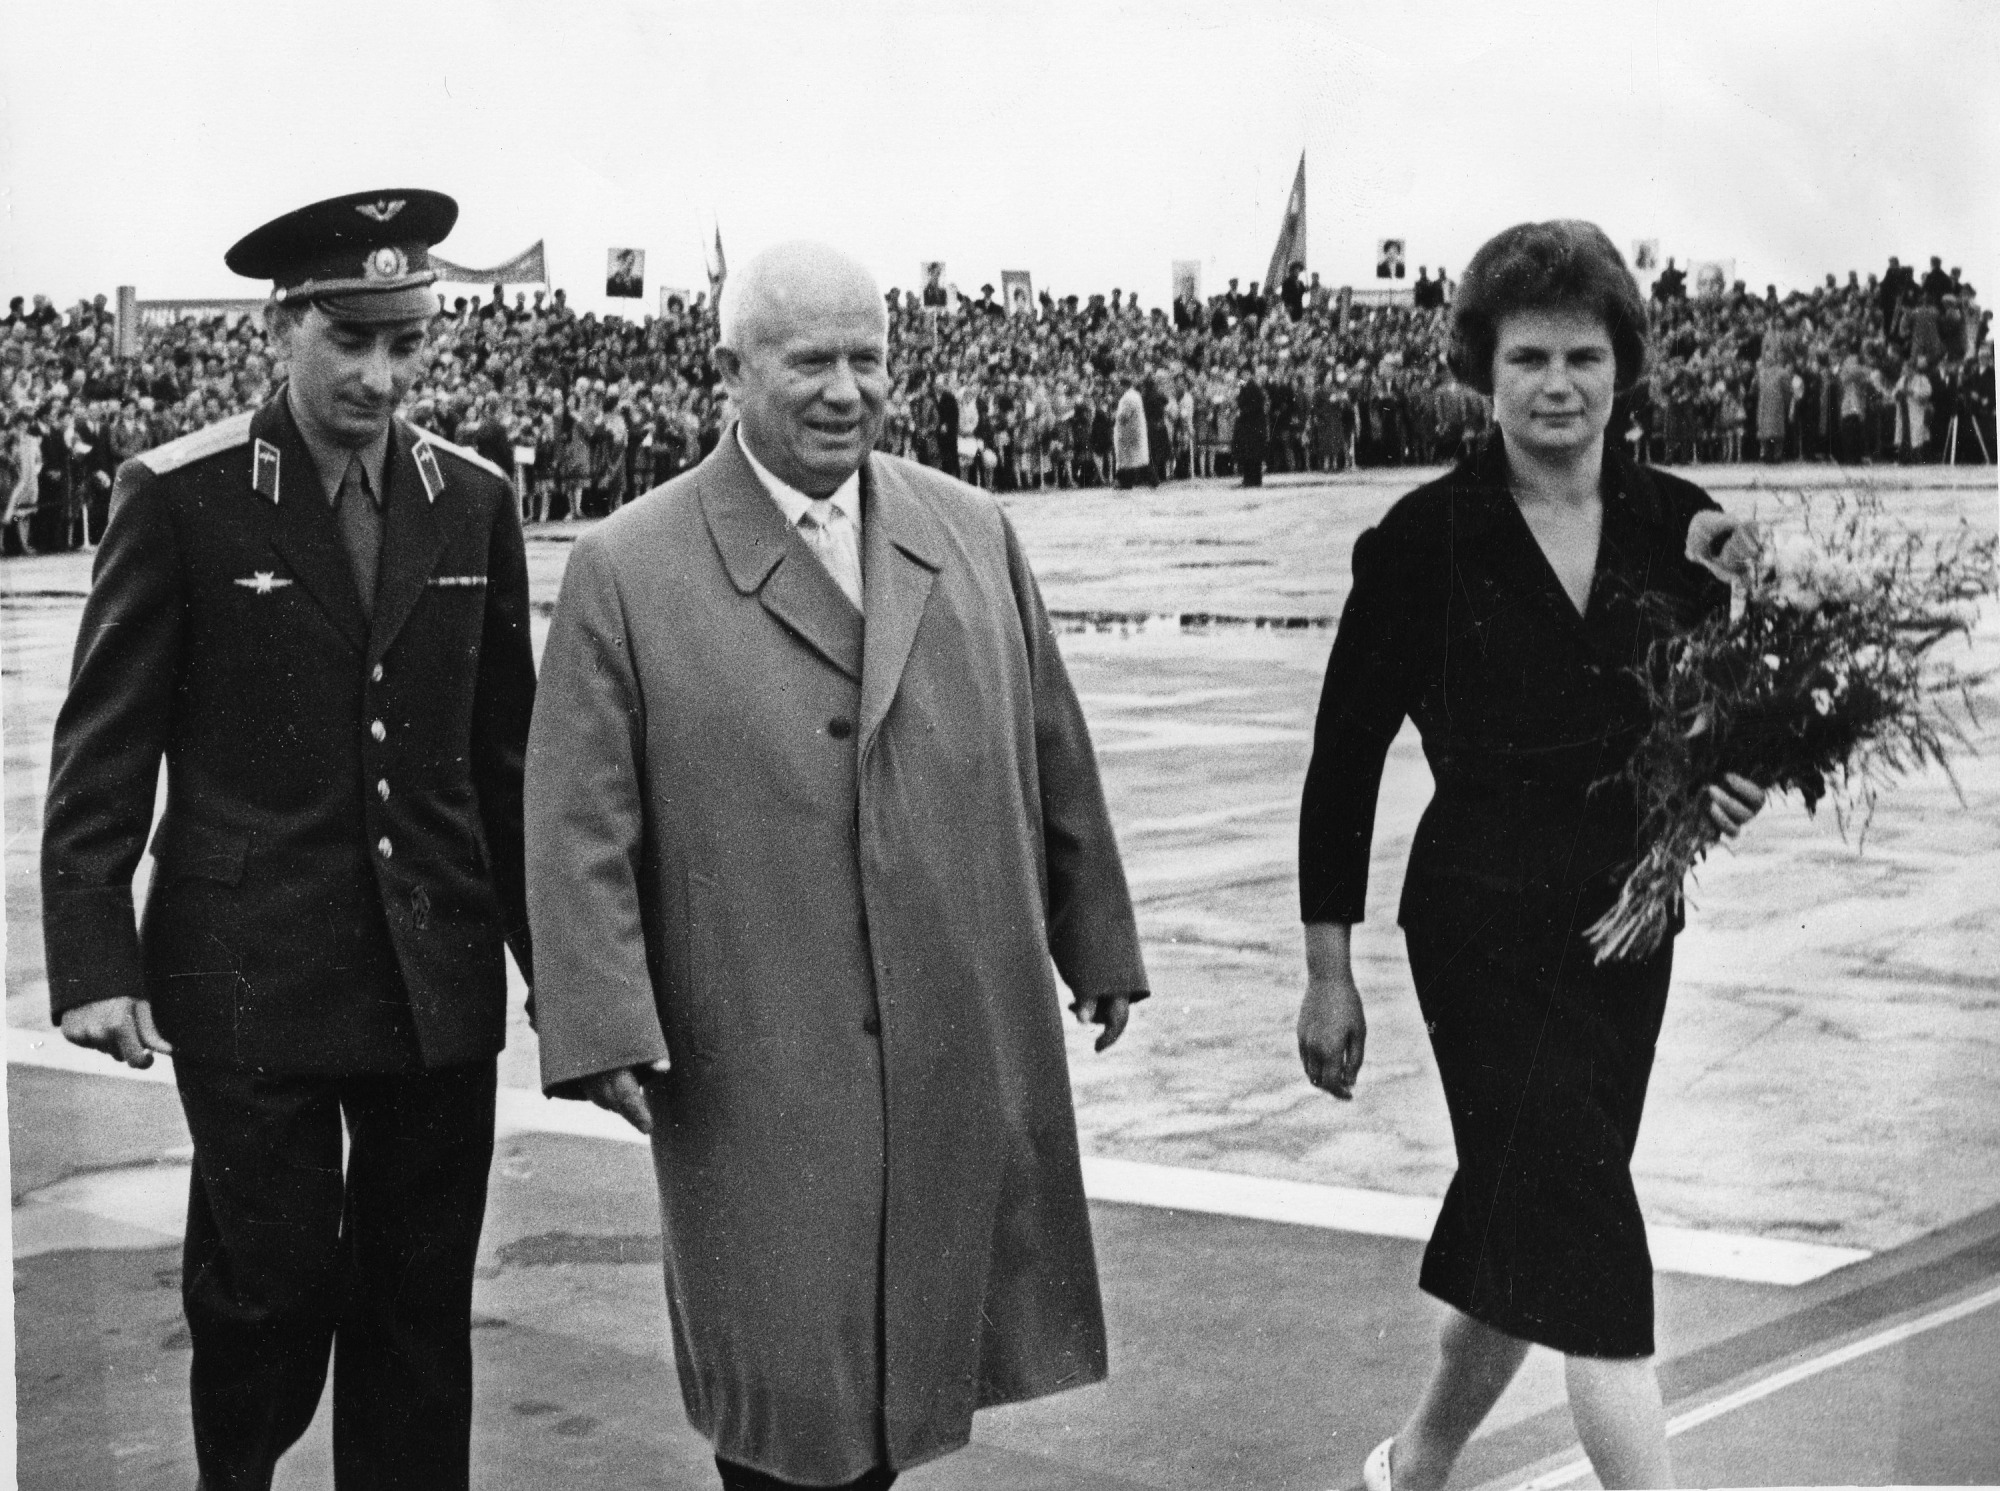 Preview of left to right: unidentified man, Nikita Khrushchev (1894-1971), and Valentina Vladimirovna Nikolayeva-Tereshkova (b. 1937)